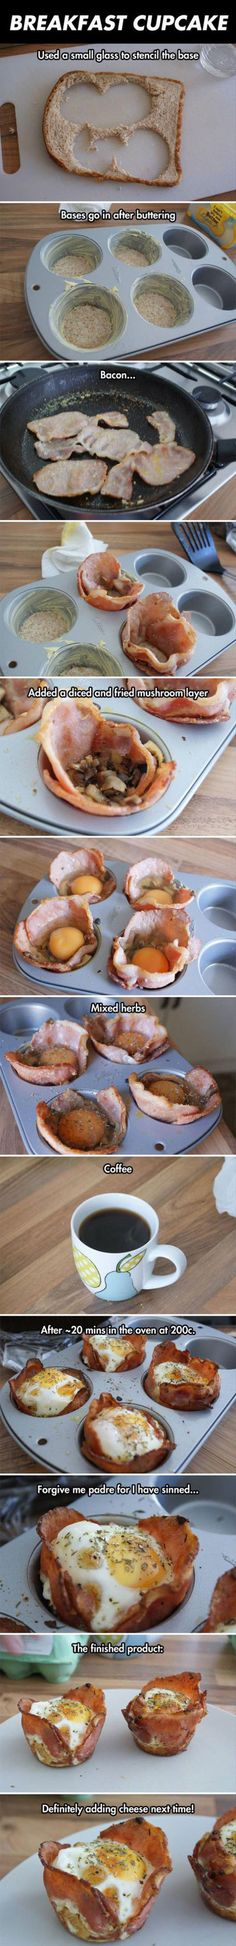 The breakfast cupcake.